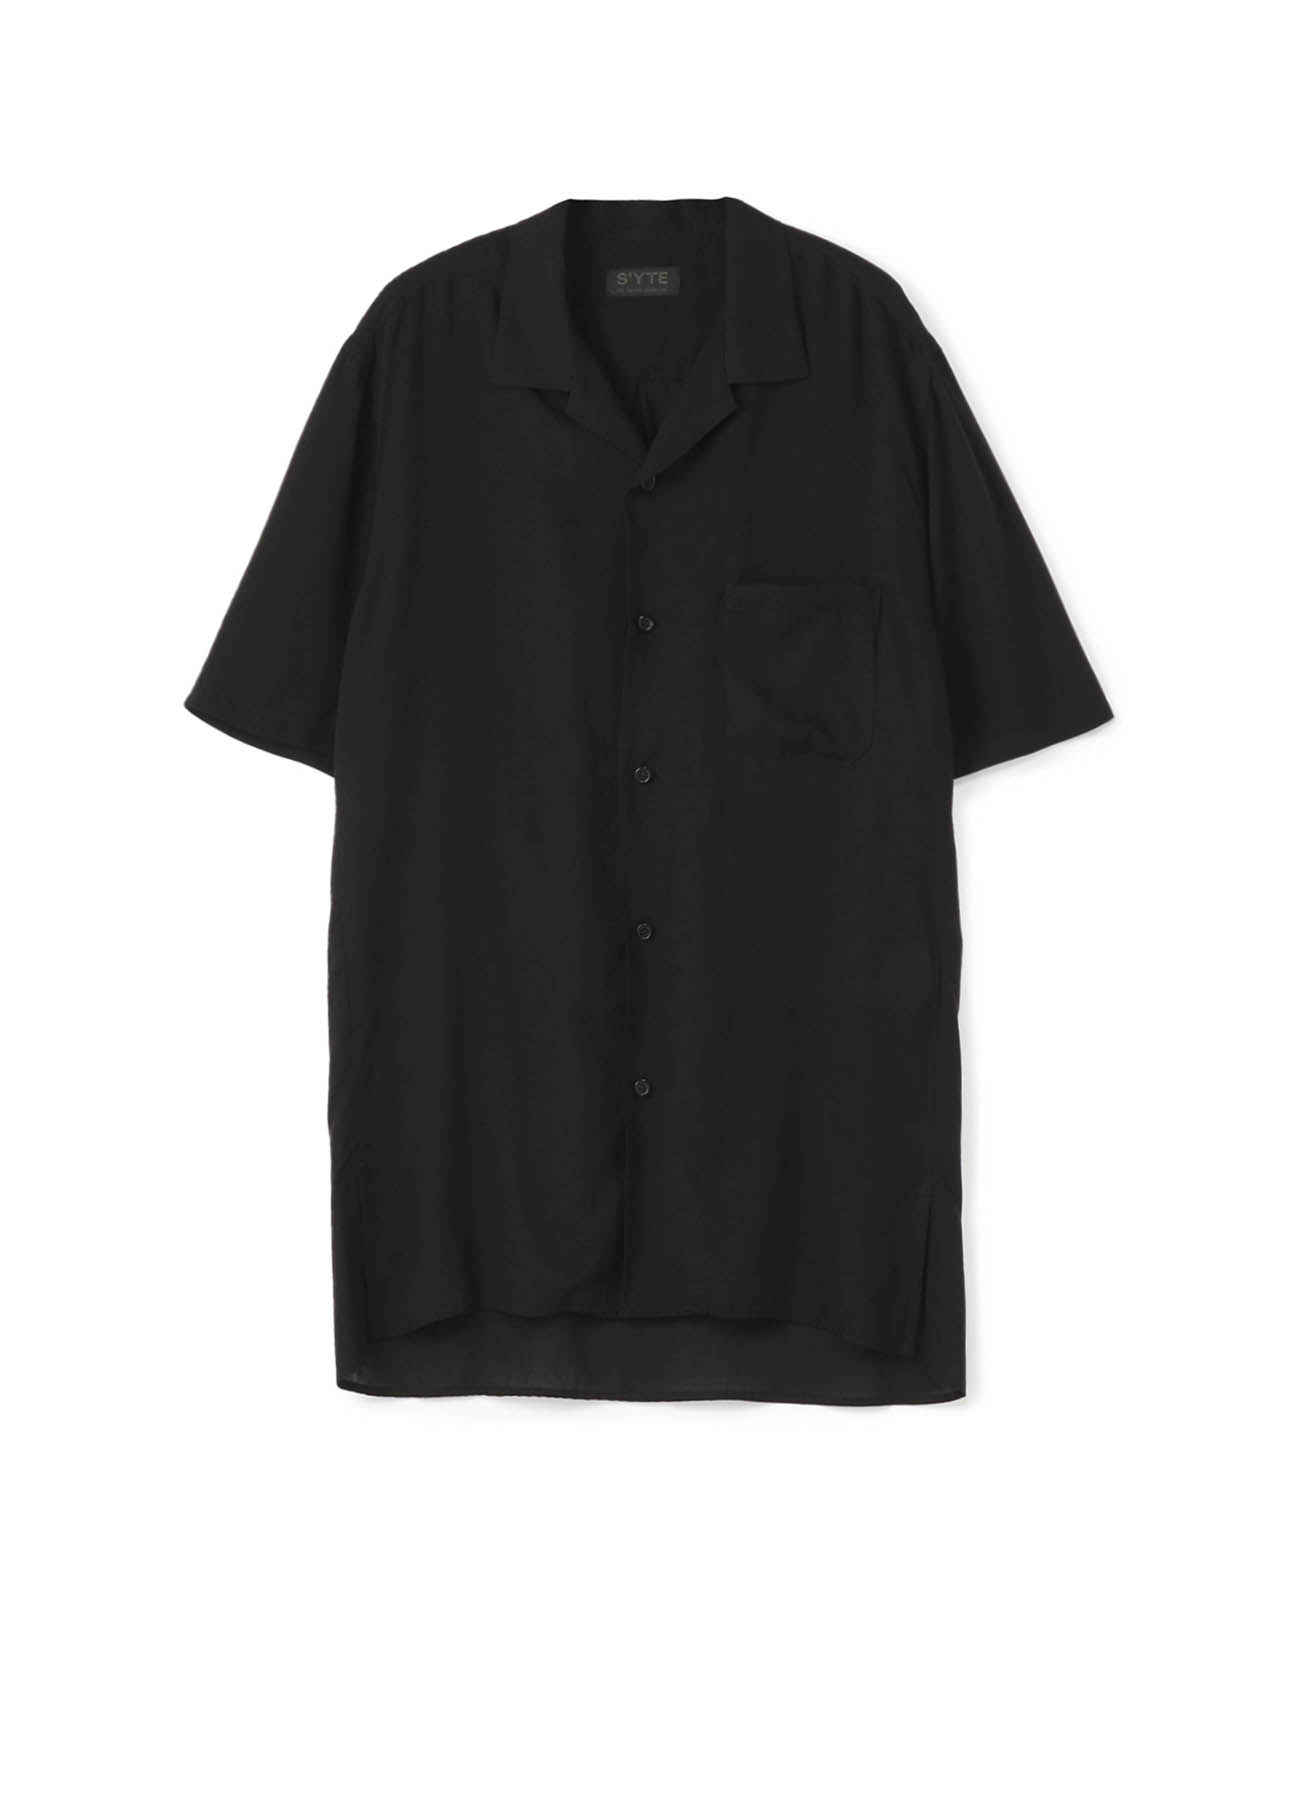 Tencel /Loan Open Collar Short Sleeve Shirt